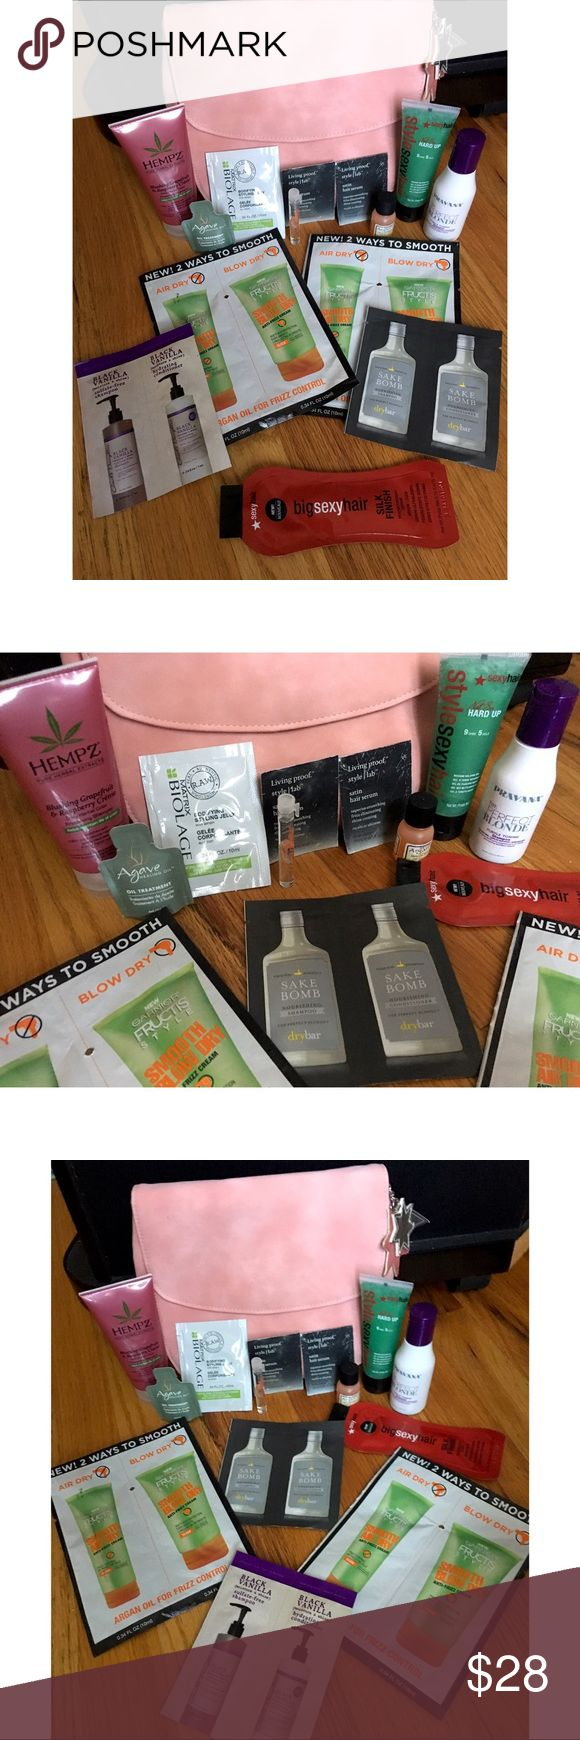 19 piece Hair Care sample set with suede clutch Includes:  - Dry Bar Sake Bomb Shampoo/Conditioner .23 oz - (2) Living Proof satin hair serum .25 oz - Bumble and Bumble Hairdresser Invisible Oil (55% of bottle) - Biolage Bodifying Styling Jelly .34 oz - Carols Daughter Black Vanilla Sulfate Free Shampoo & Hydrating Conditioner .24oz - Pravana The Perfect Blonde Purple Toning Shampoo. Sulfate Free. 2.03 oz - (2) Garnier Fructis Argan Oil Anti Frizz Cream for Air(2)/Blow(2) Dry .34 oz…